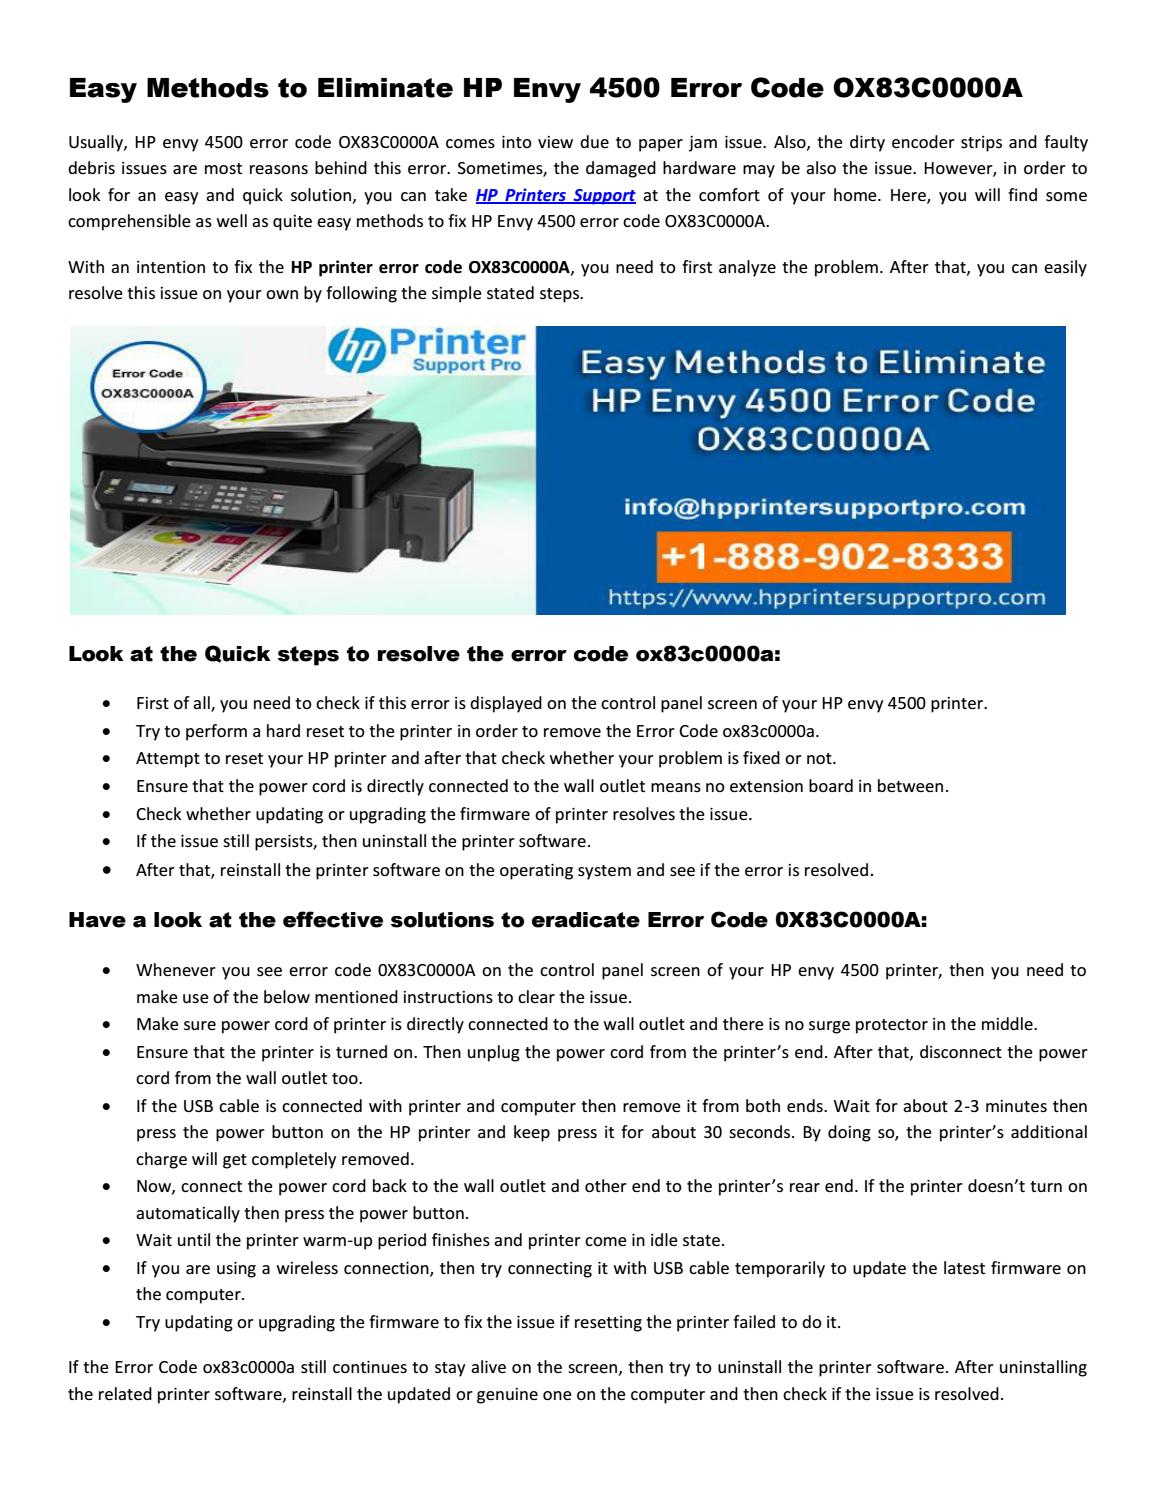 Easy Methods to Eliminate HP Envy 4500 Error Code OX83C0000A by